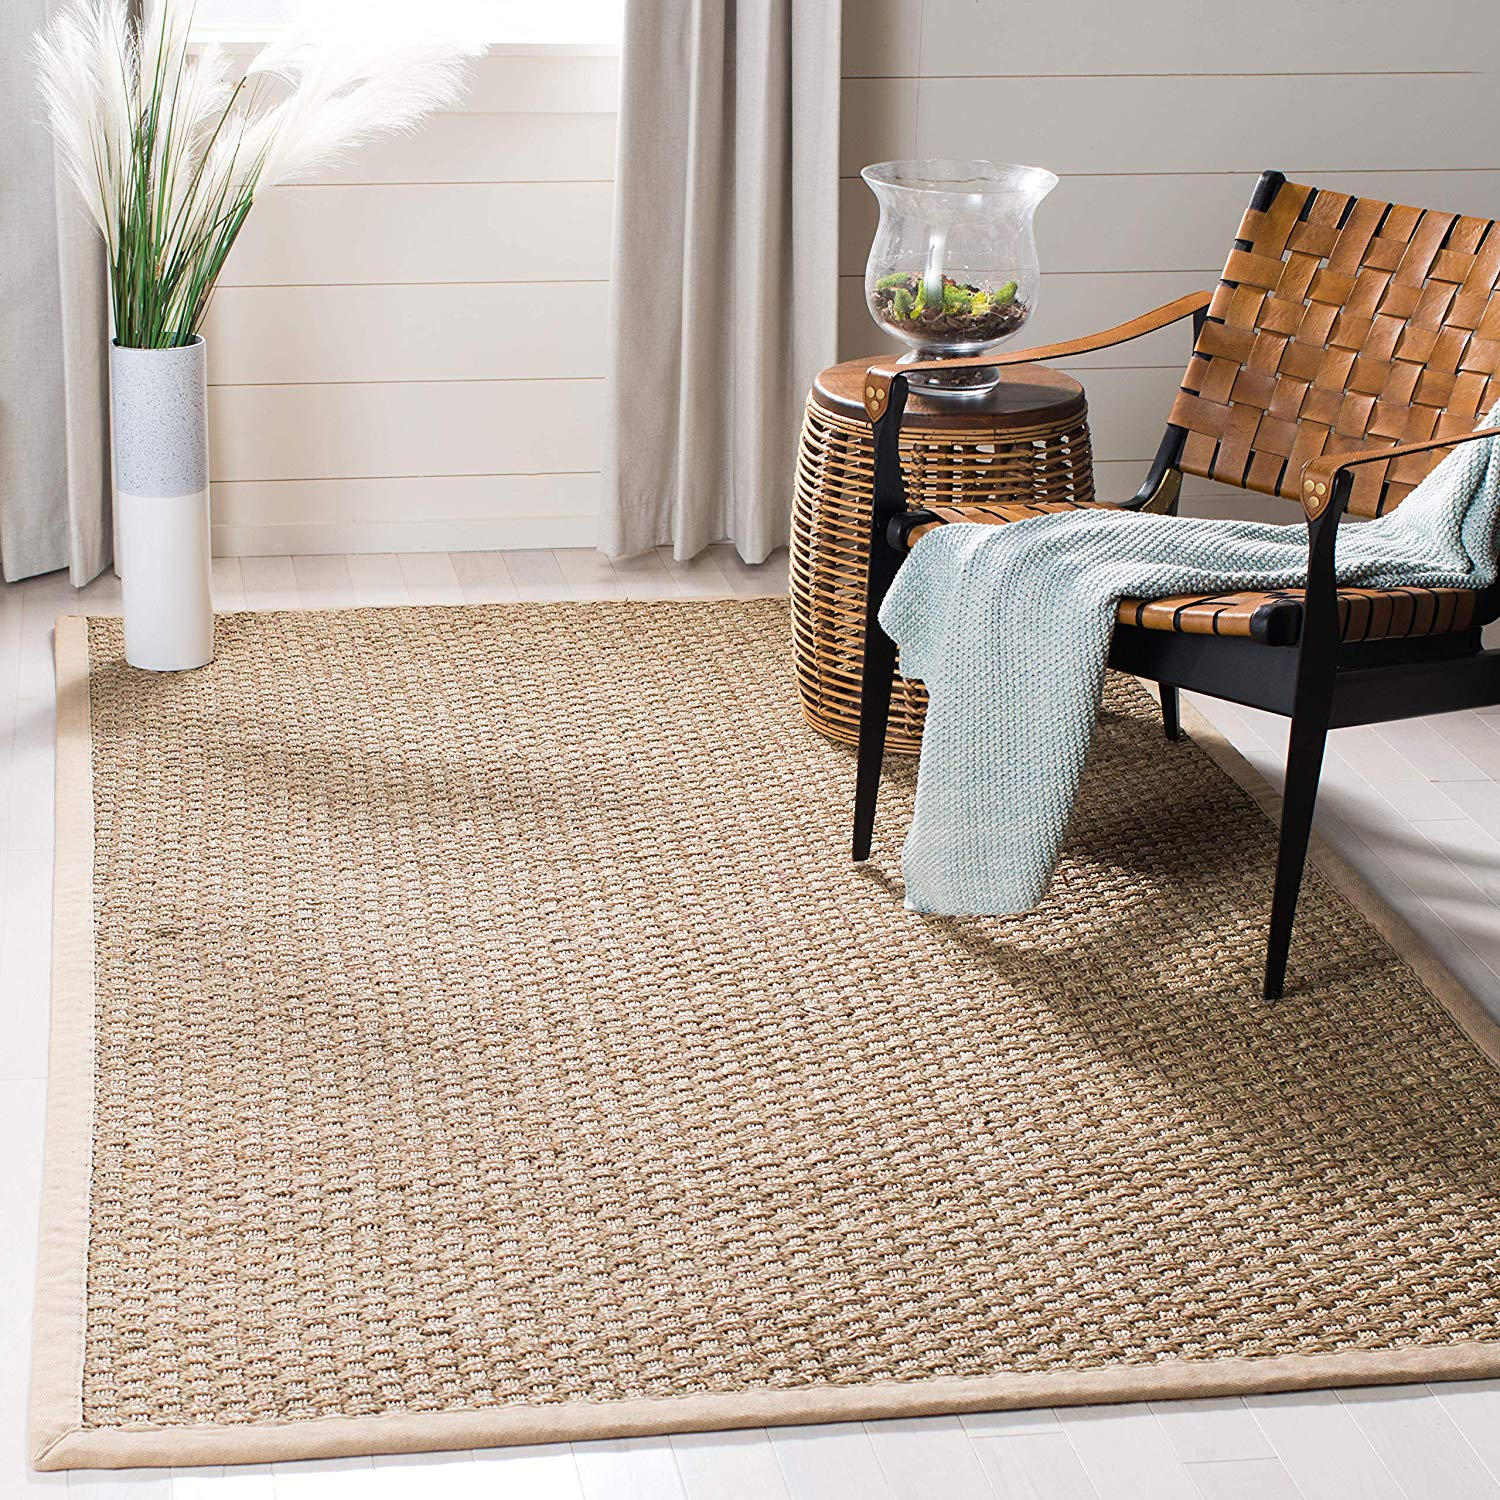 tropical-decor-rug